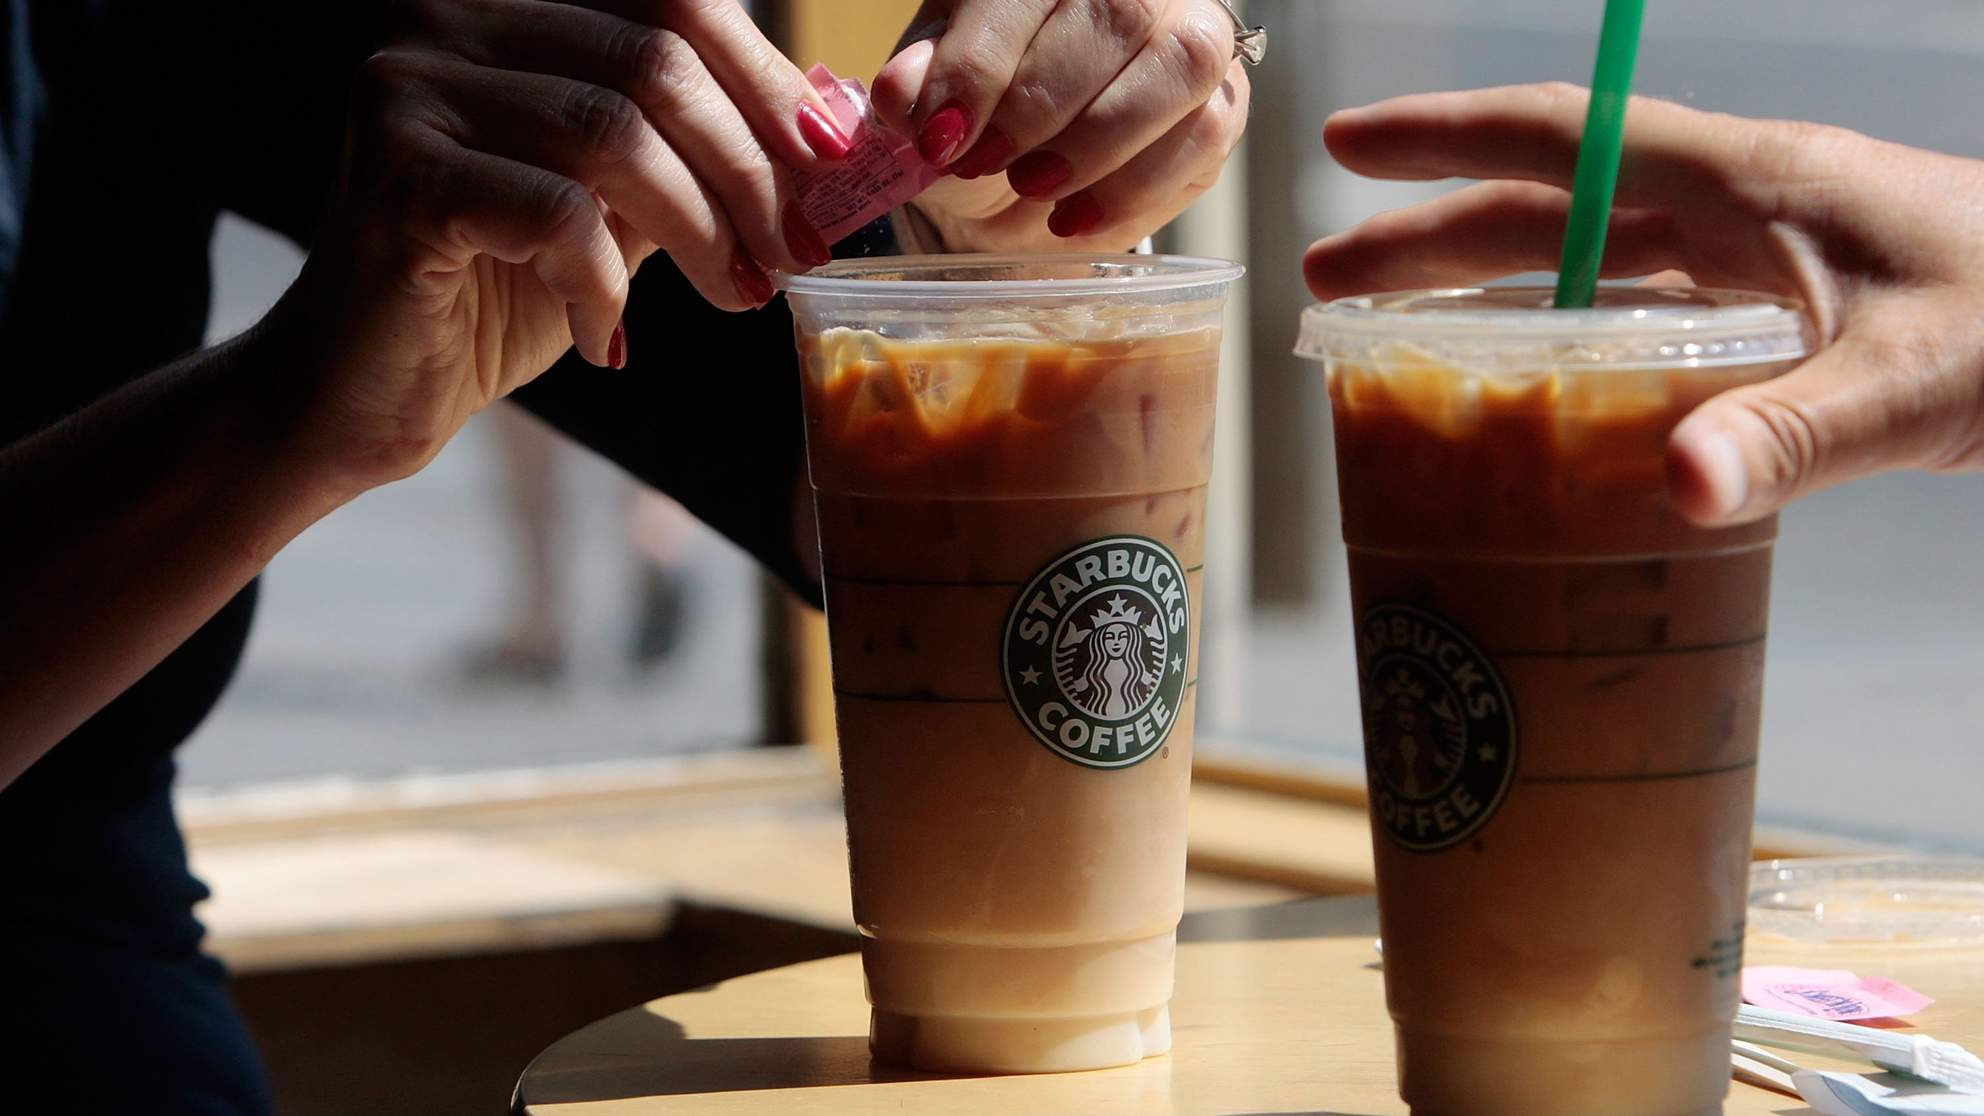 starbucks to raise prices on select drinks and lower on simple drinks